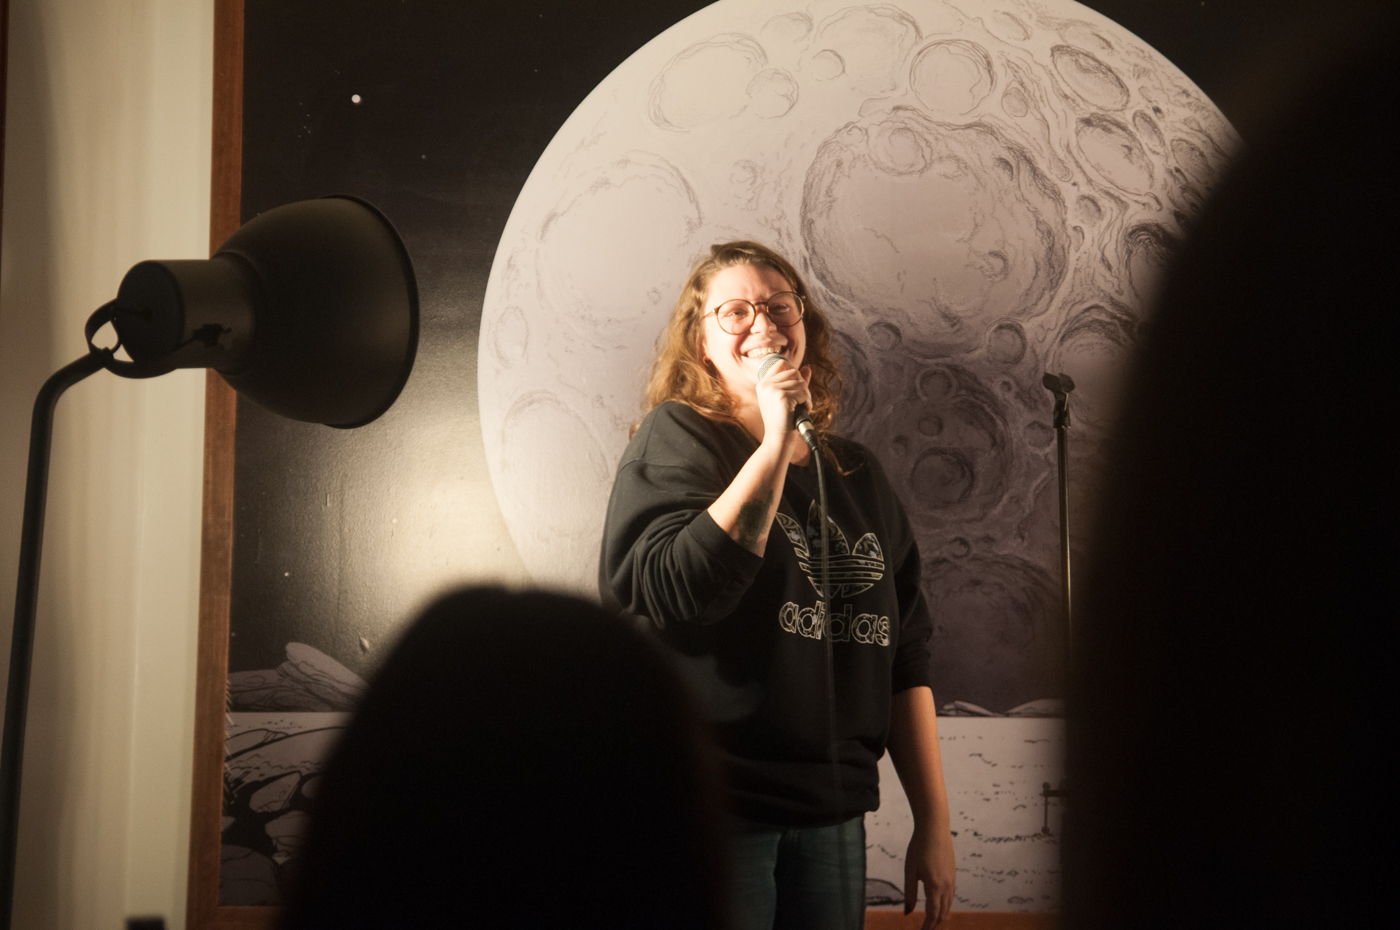 Lauren Mitchell hosts comedy at the Princess Cafe.